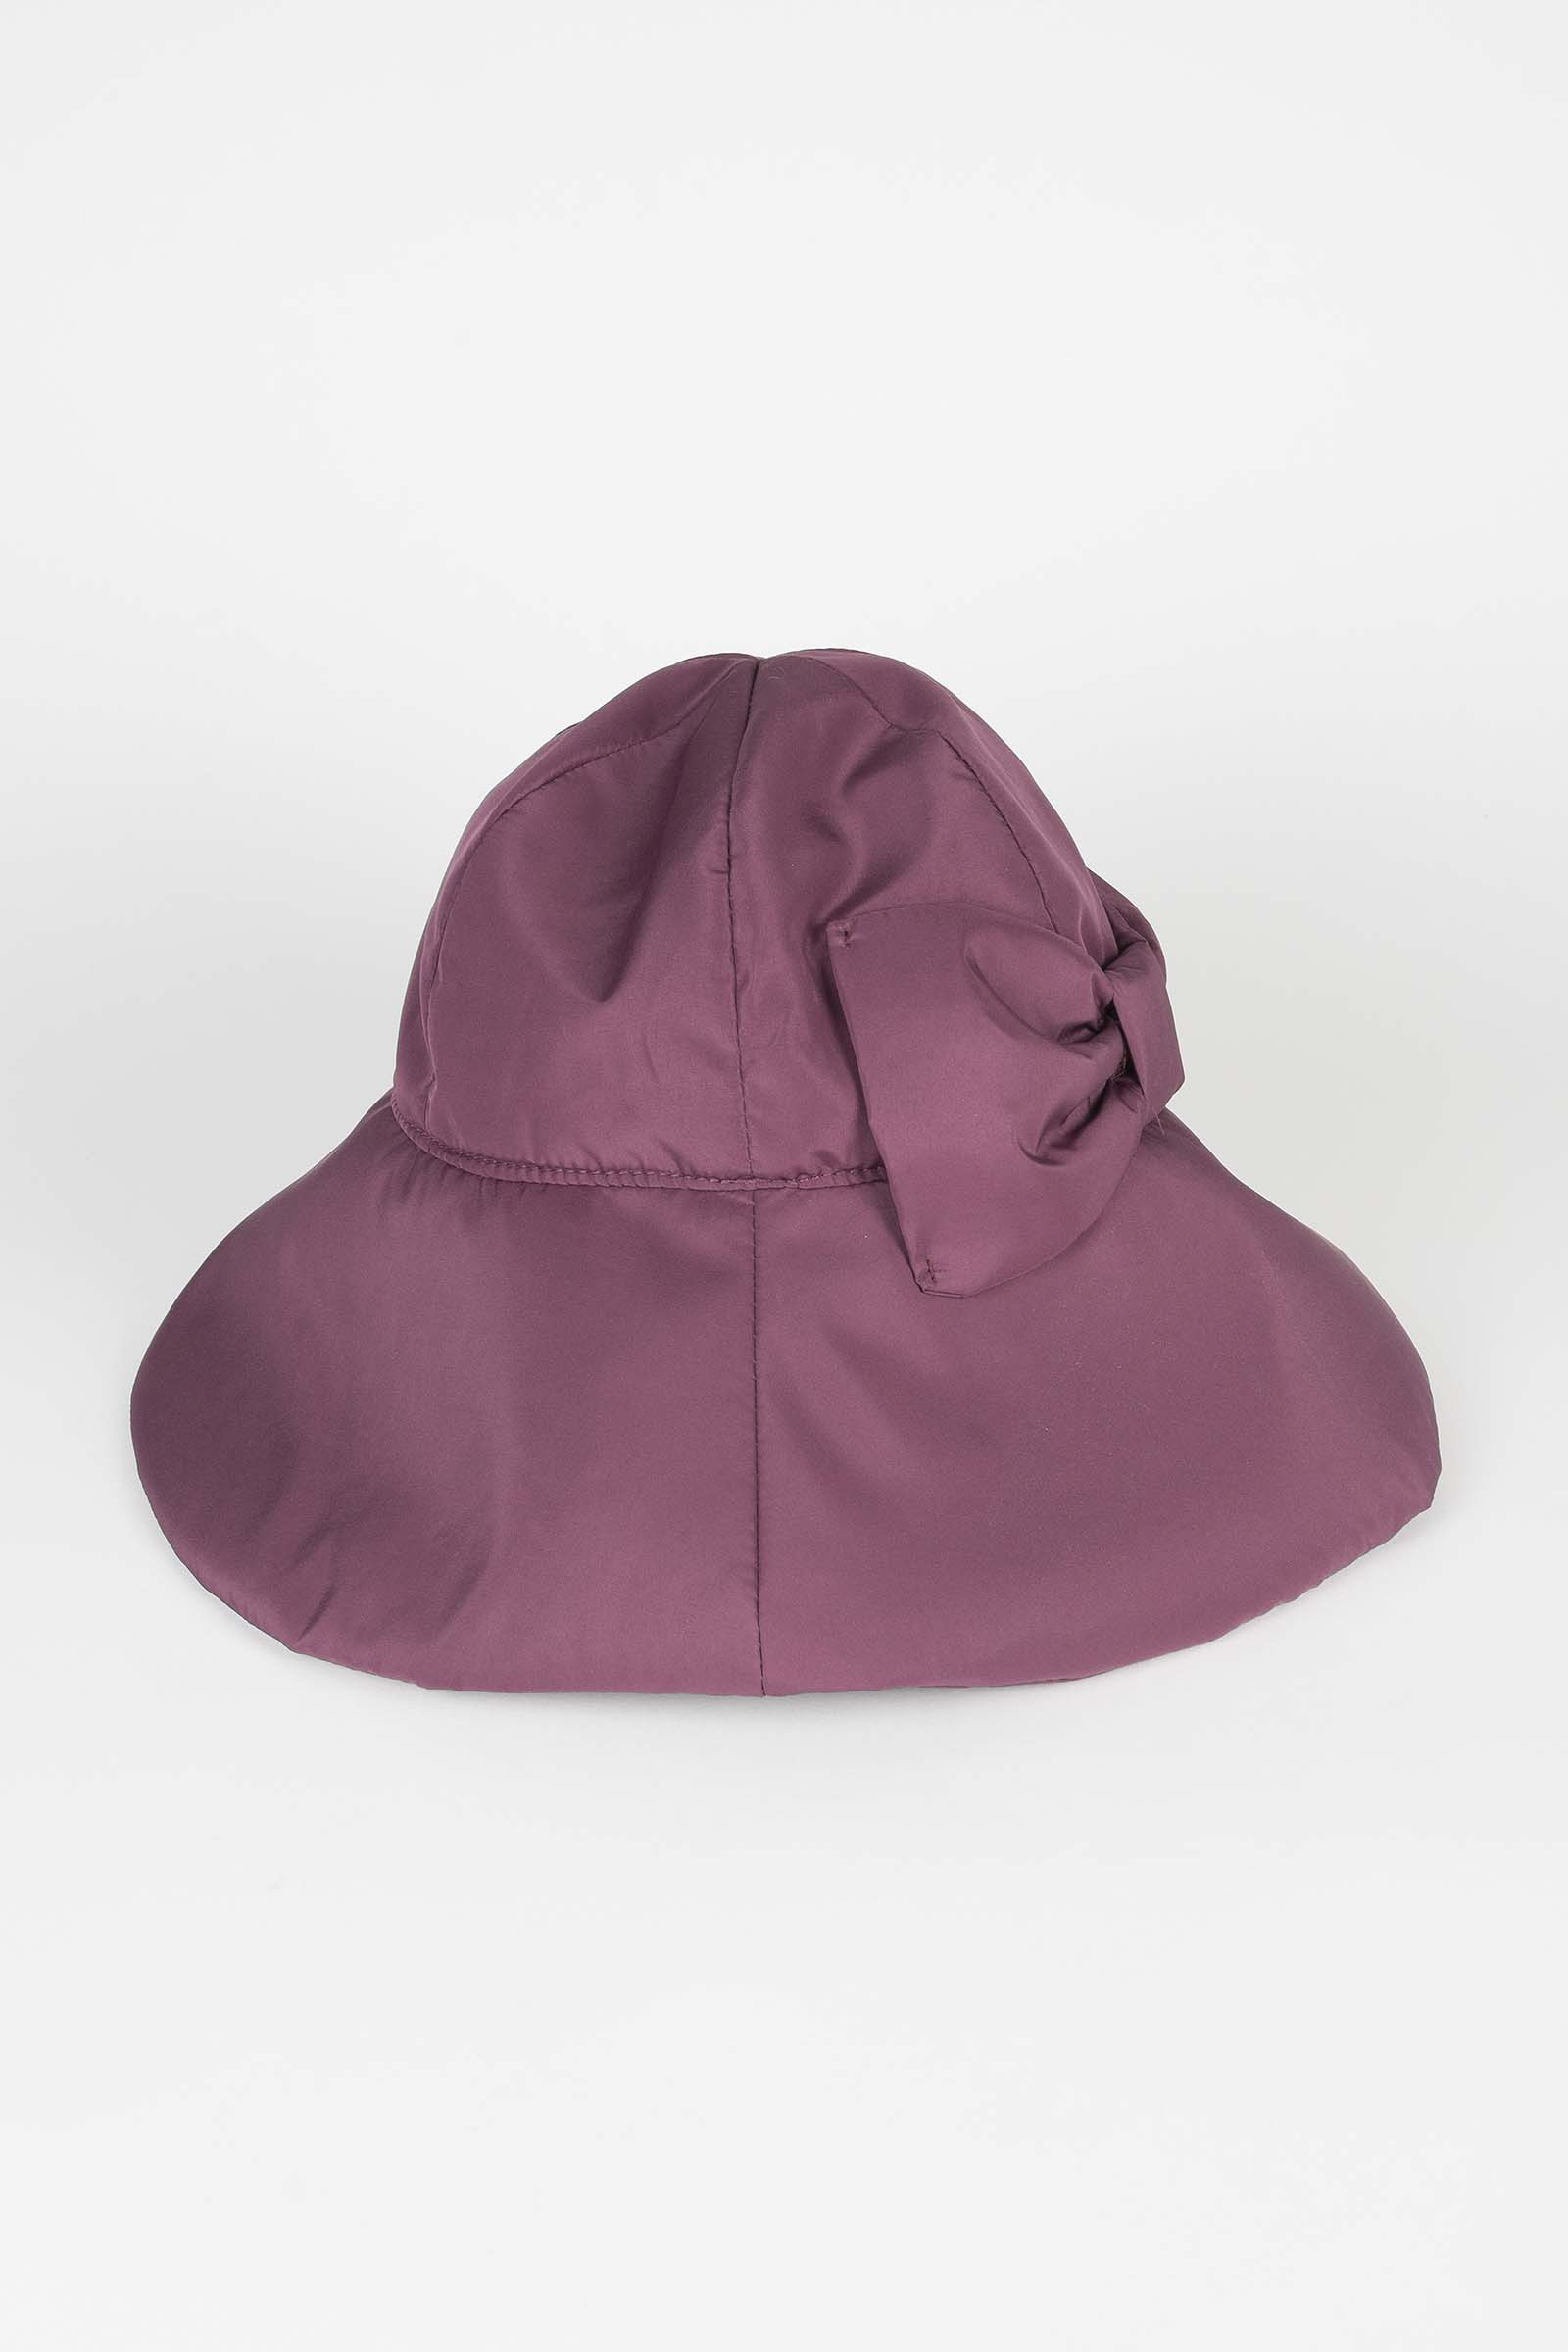 Purple Bucket Hat Elisa Rivera